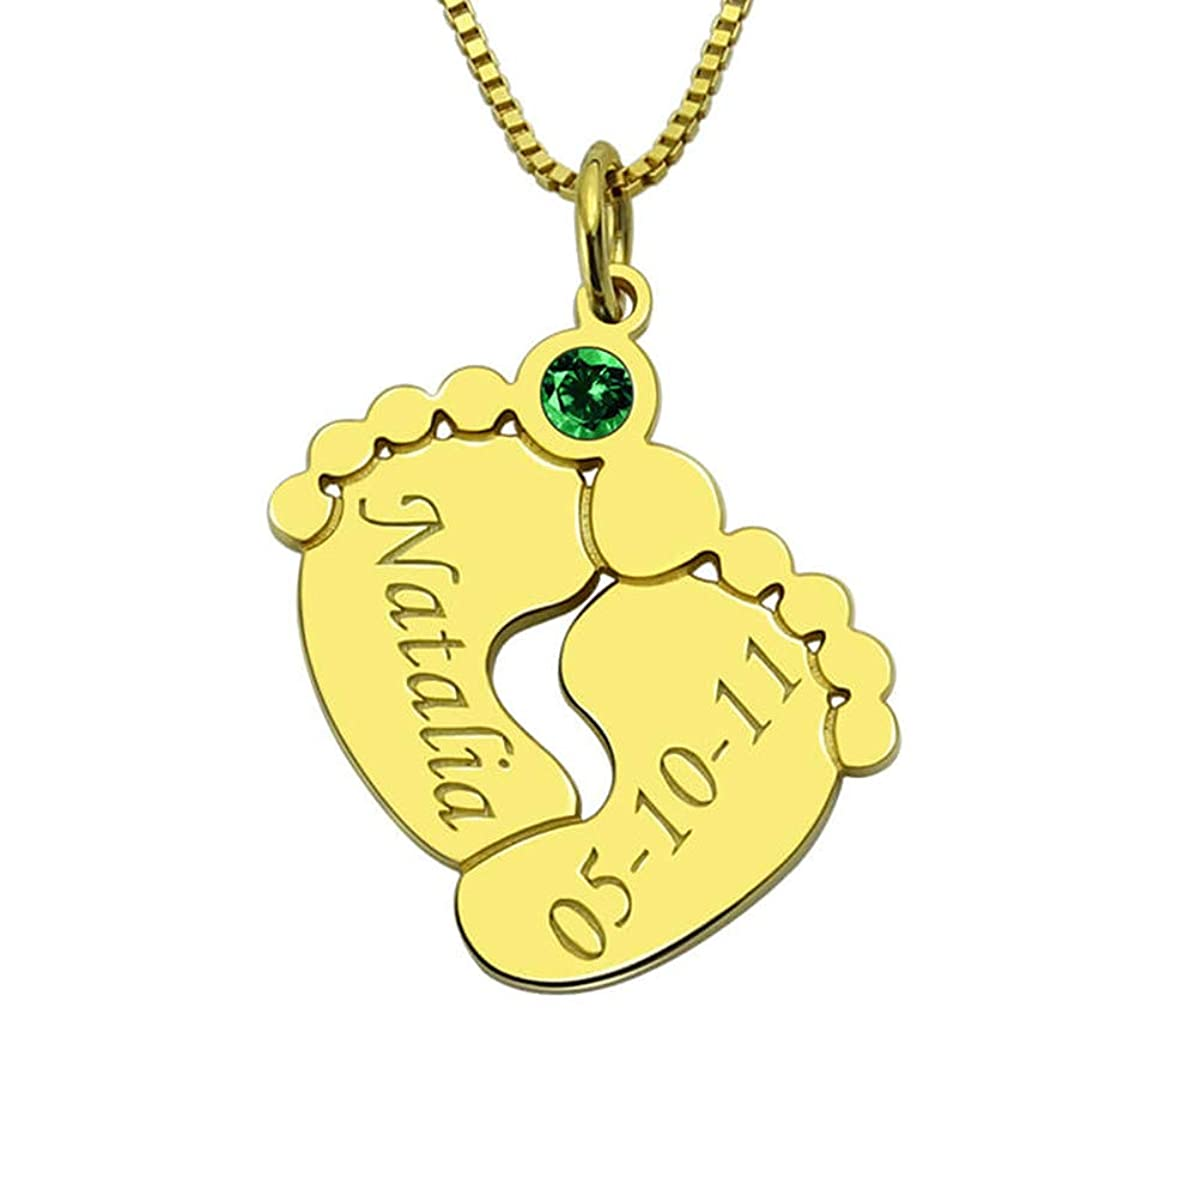 Getname Necklace Personalized Custom Engraved Baby Feet 925 Sterling Silver Necklace with Personalized Birthstone Mother's Day Jewelry